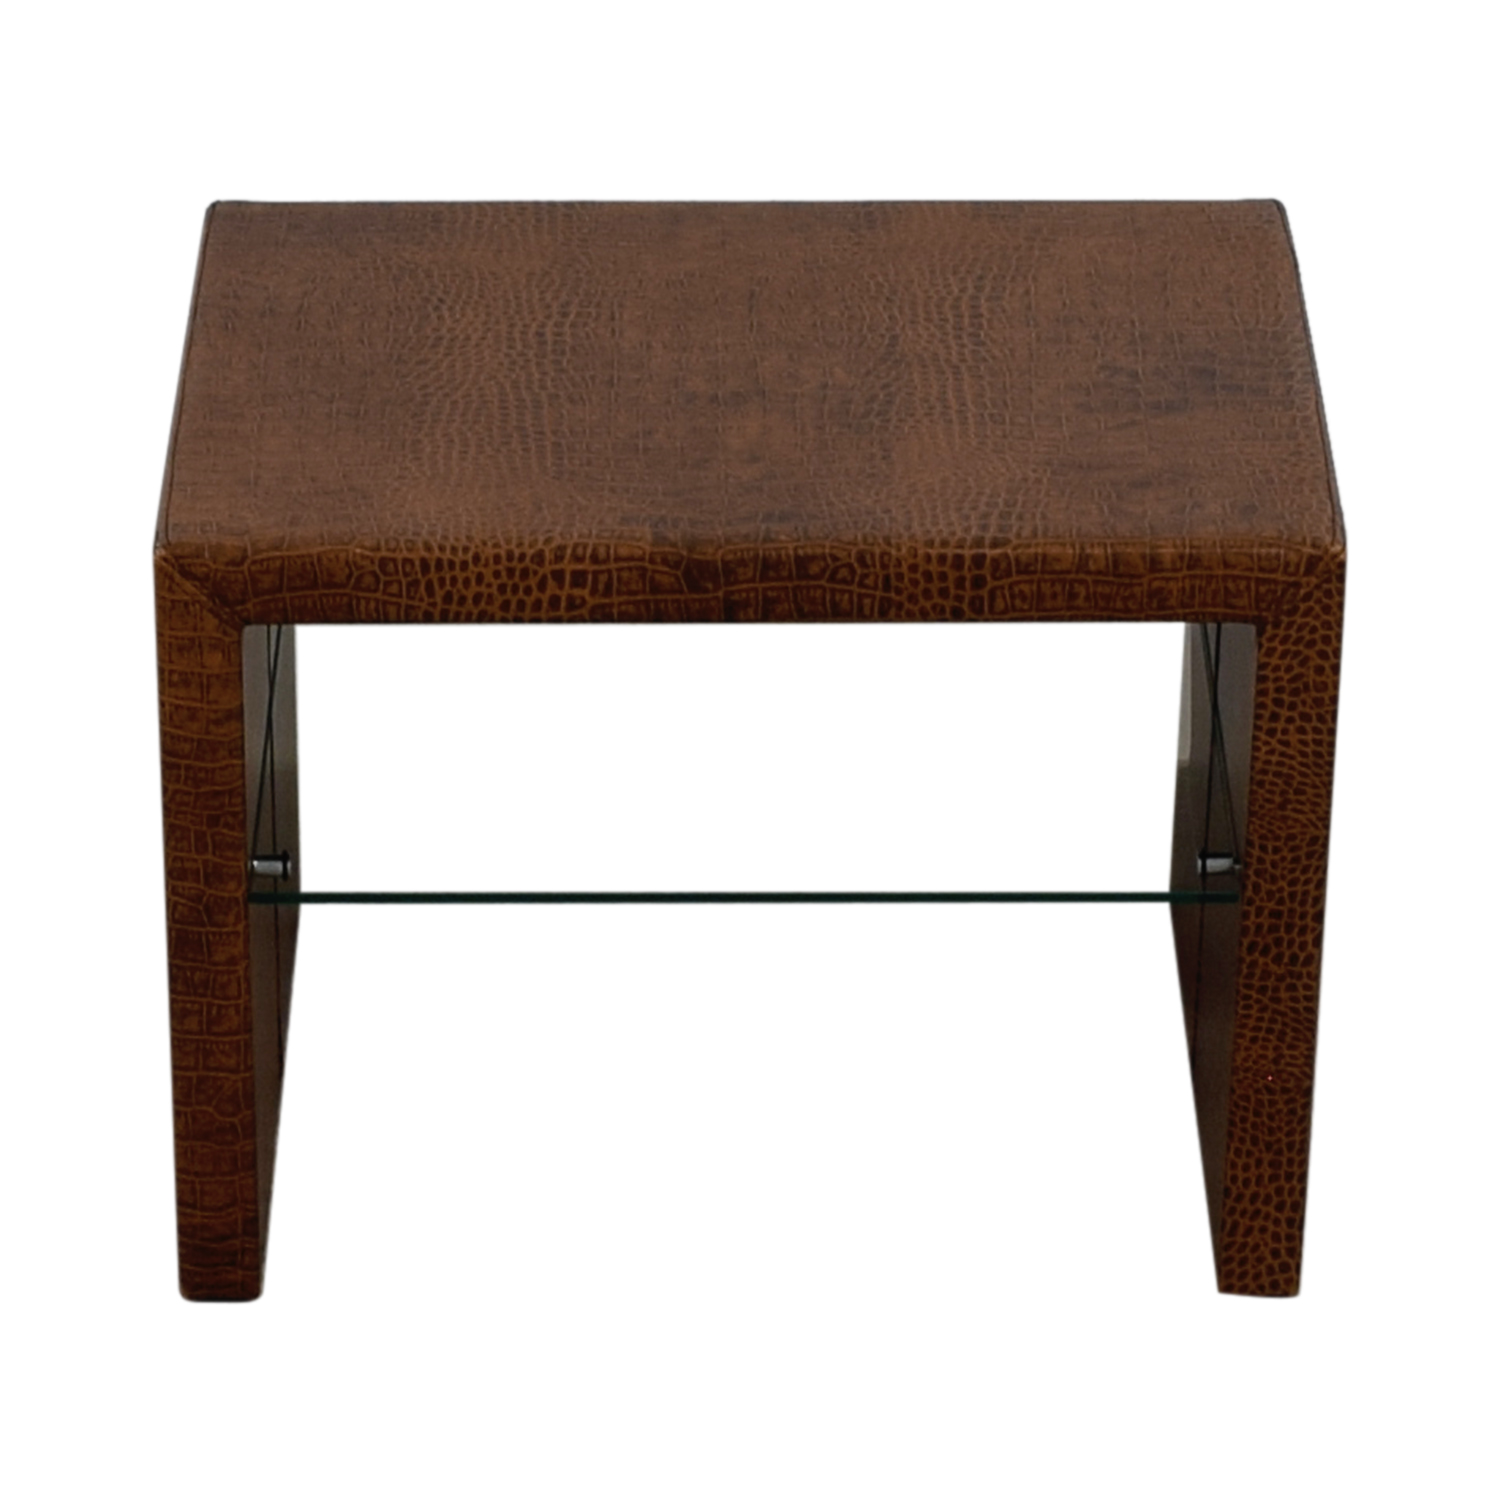 Crate & Barrel Crate & Barrel Brown Table with Glass Shelf